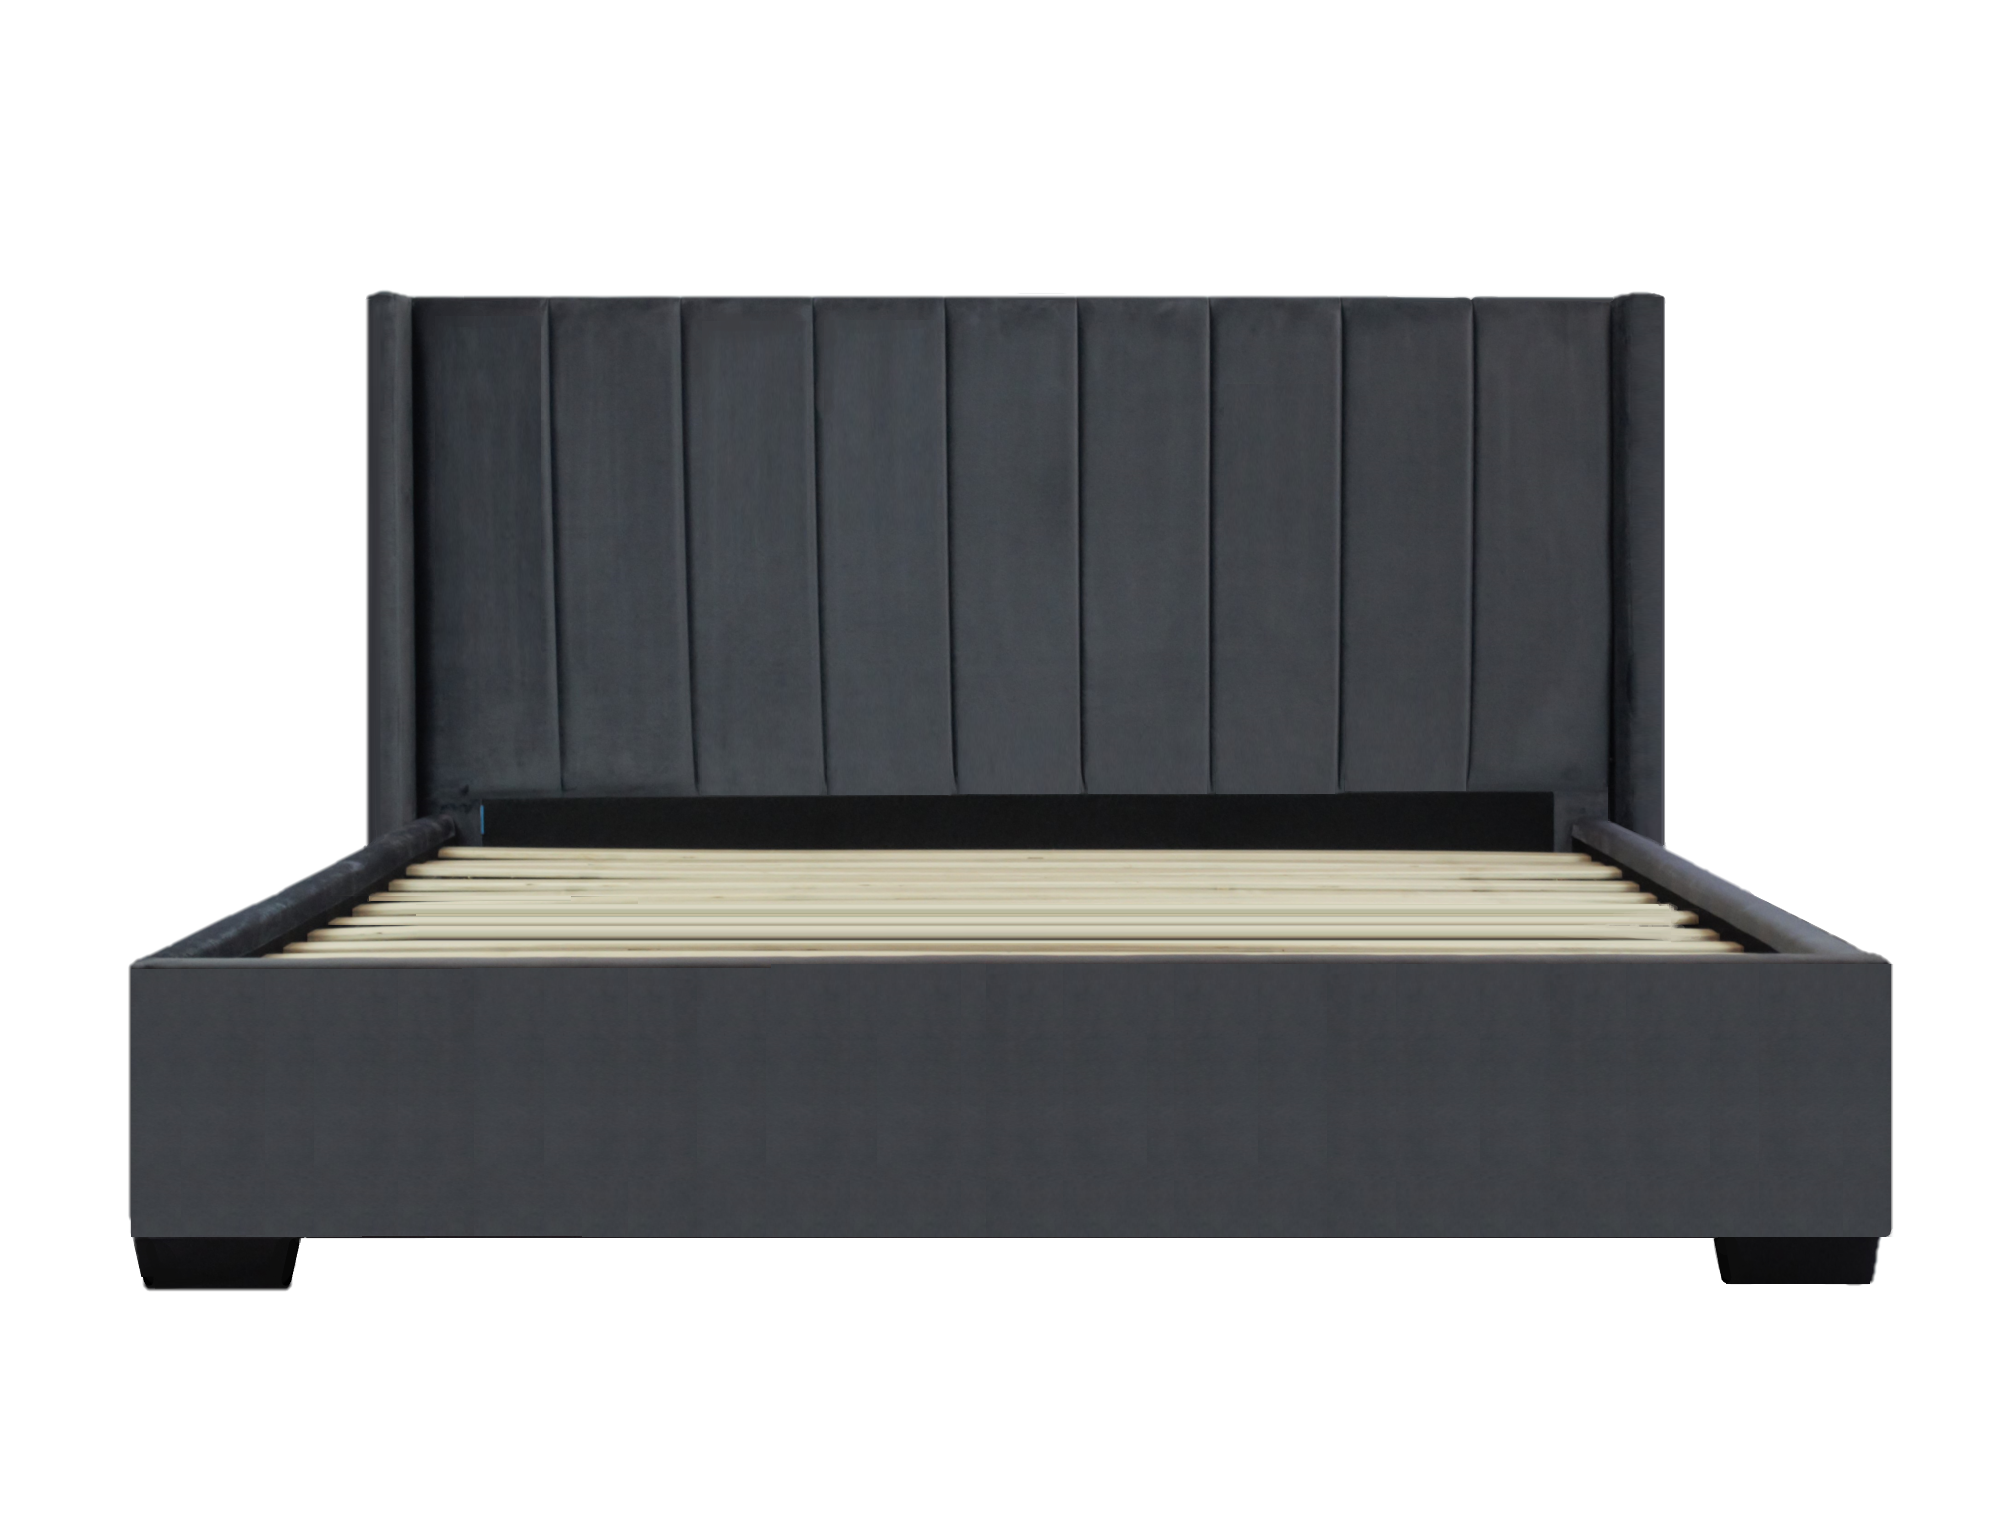 *NEW* Bed Frame (Super King, King, Queen) - Mayfair Velvet Charcoal